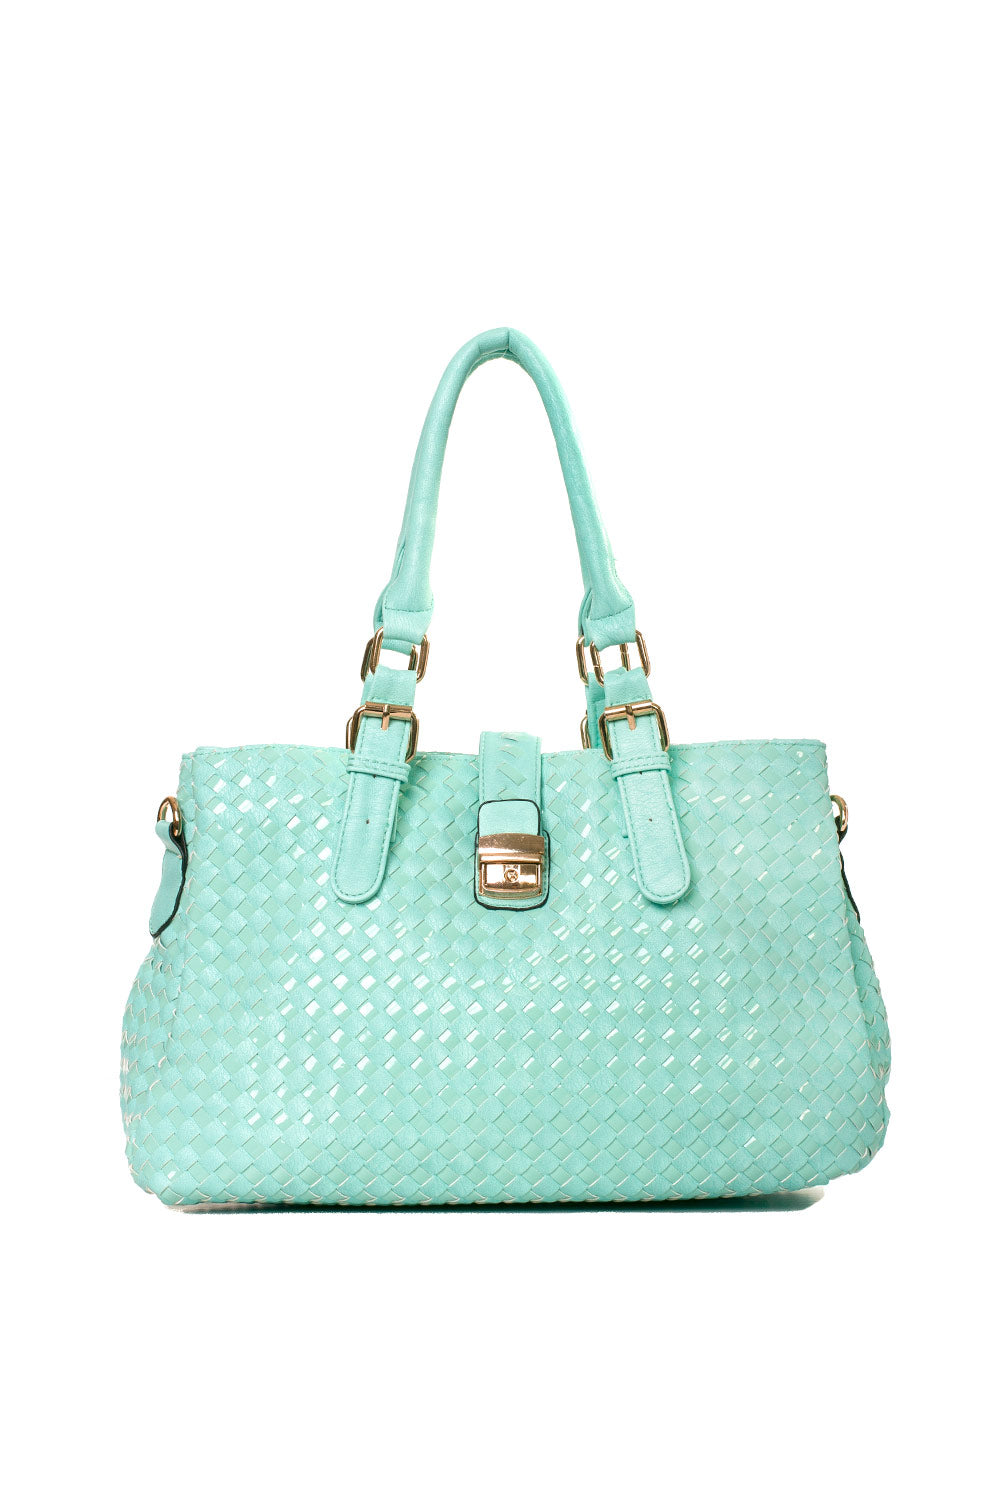 Type 1 Dream Weaver Handbag